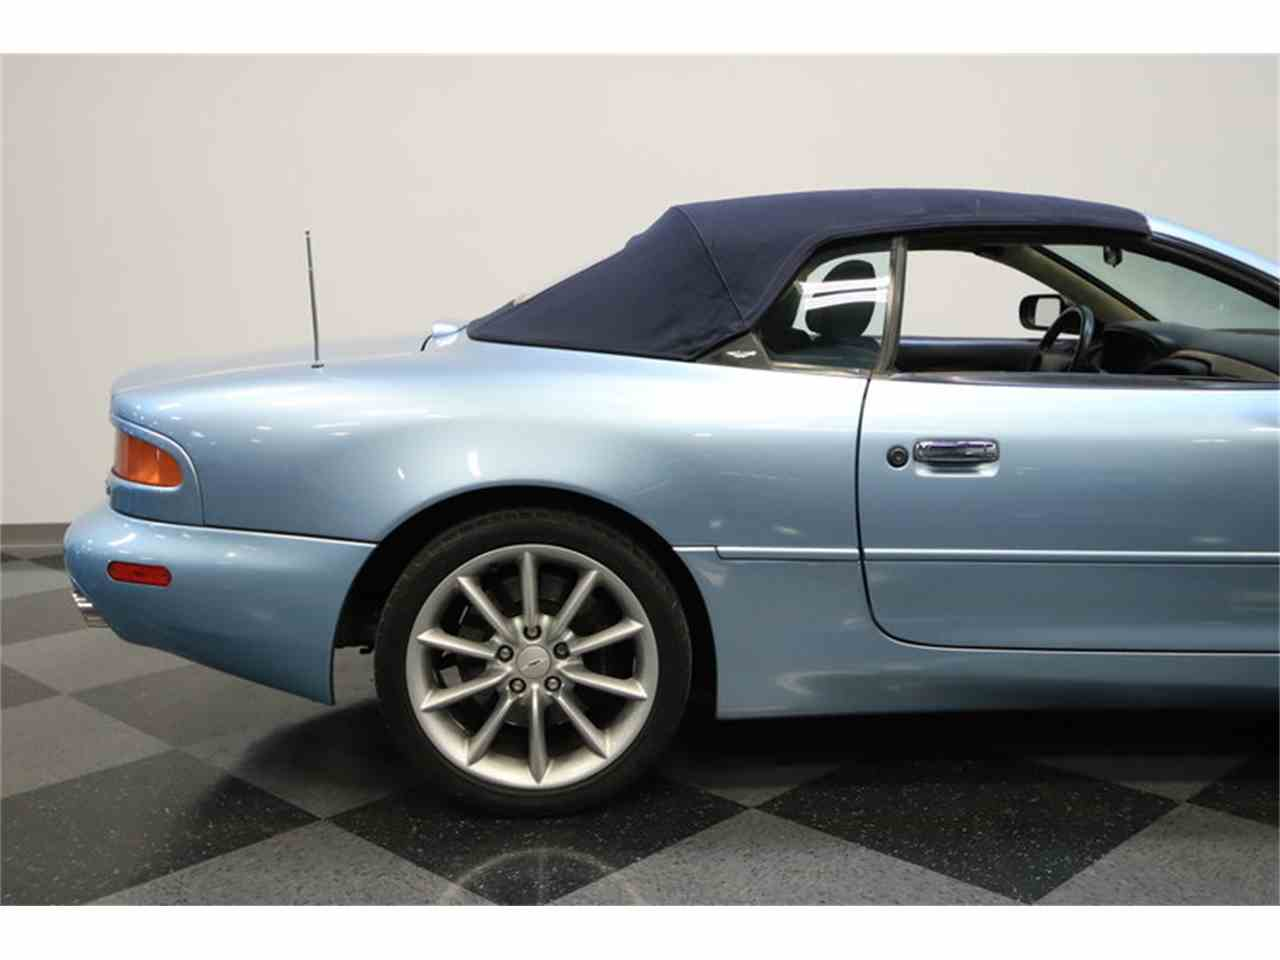 Large Picture of '00 DB7 Vantage Volante located in Mesa Arizona - $39,995.00 Offered by Streetside Classics - Phoenix - M73B